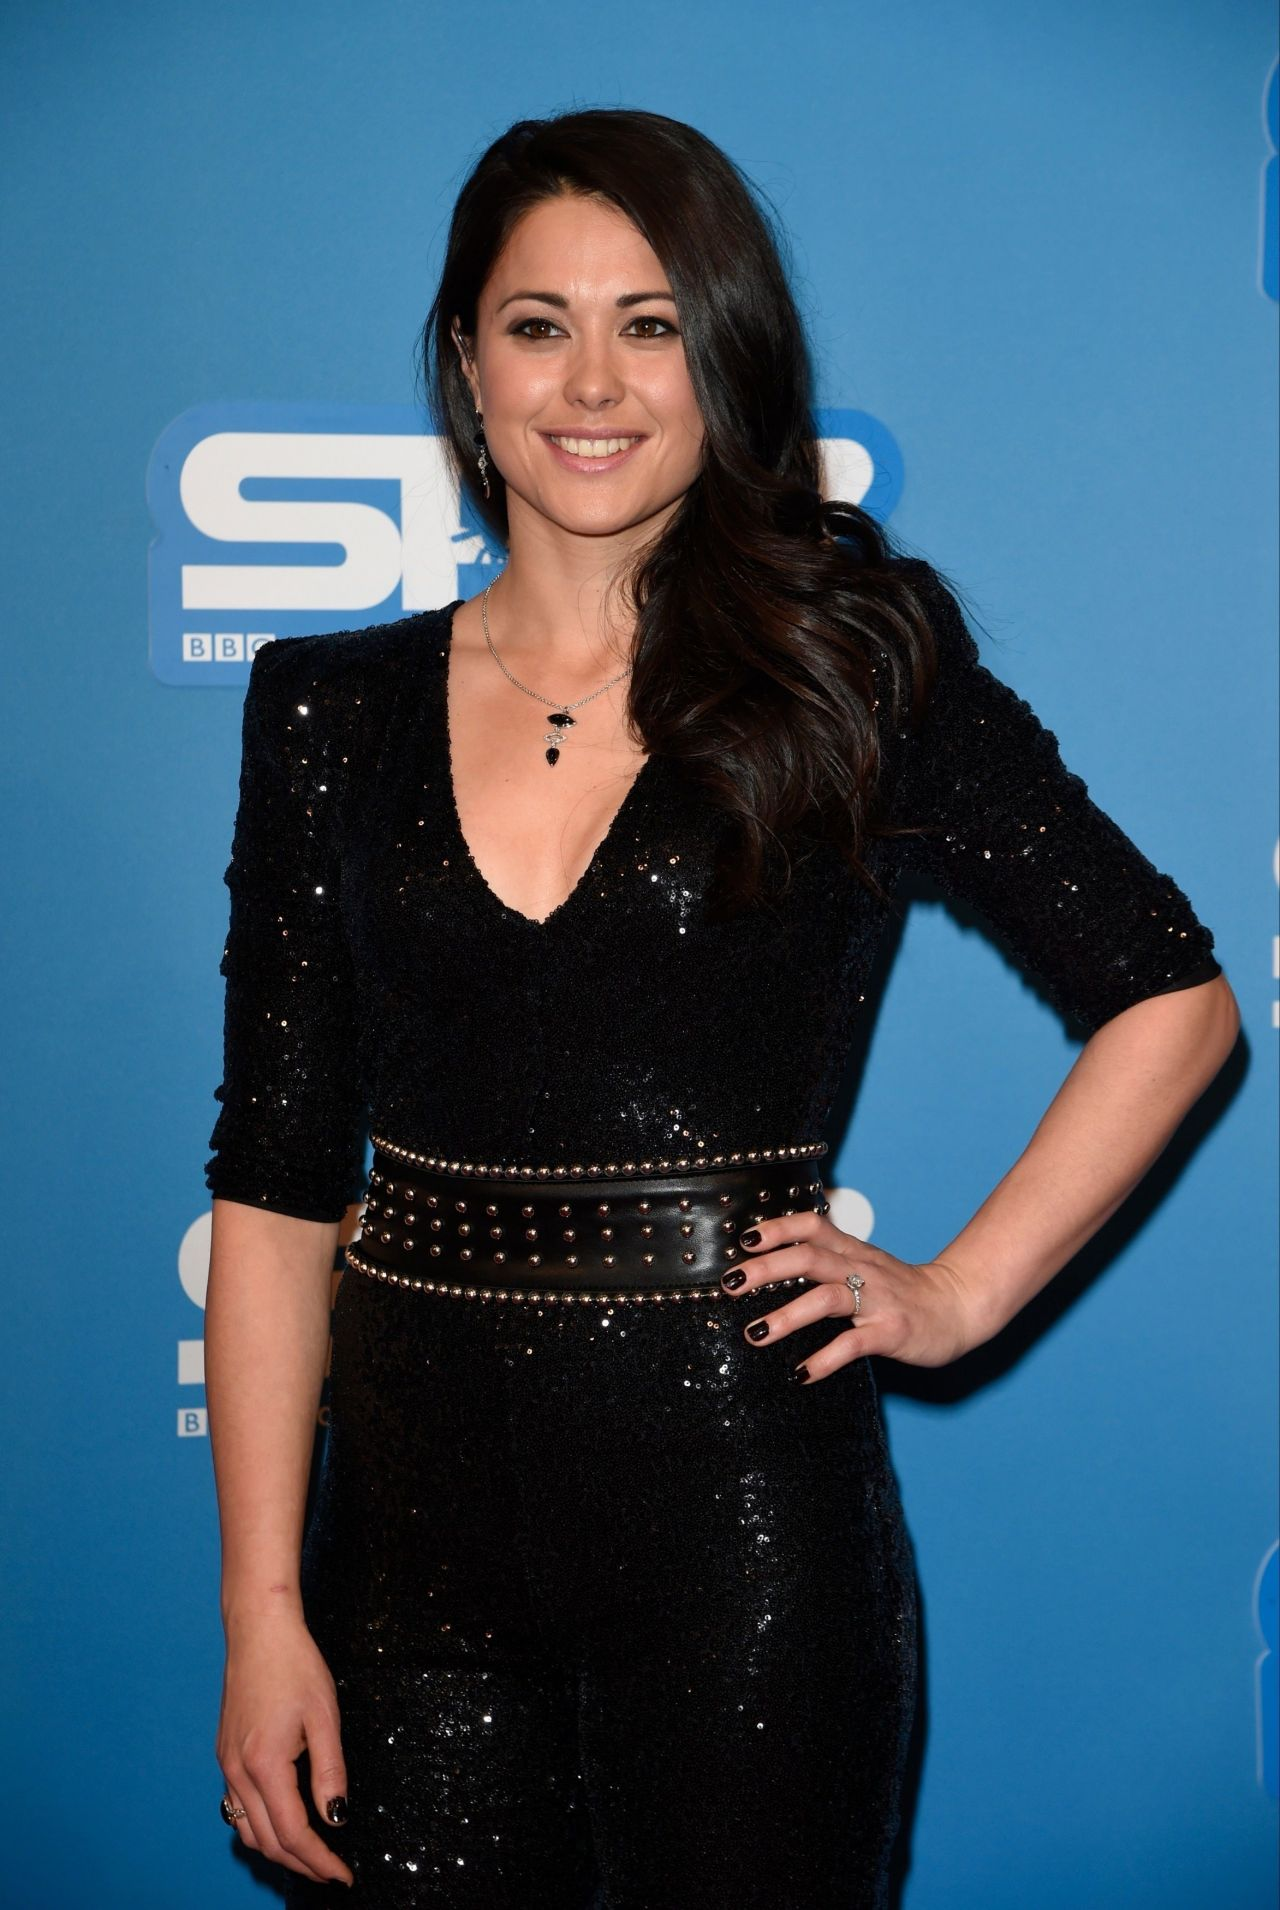 Sam Quek Sports Personality Of The Year In Liverpool